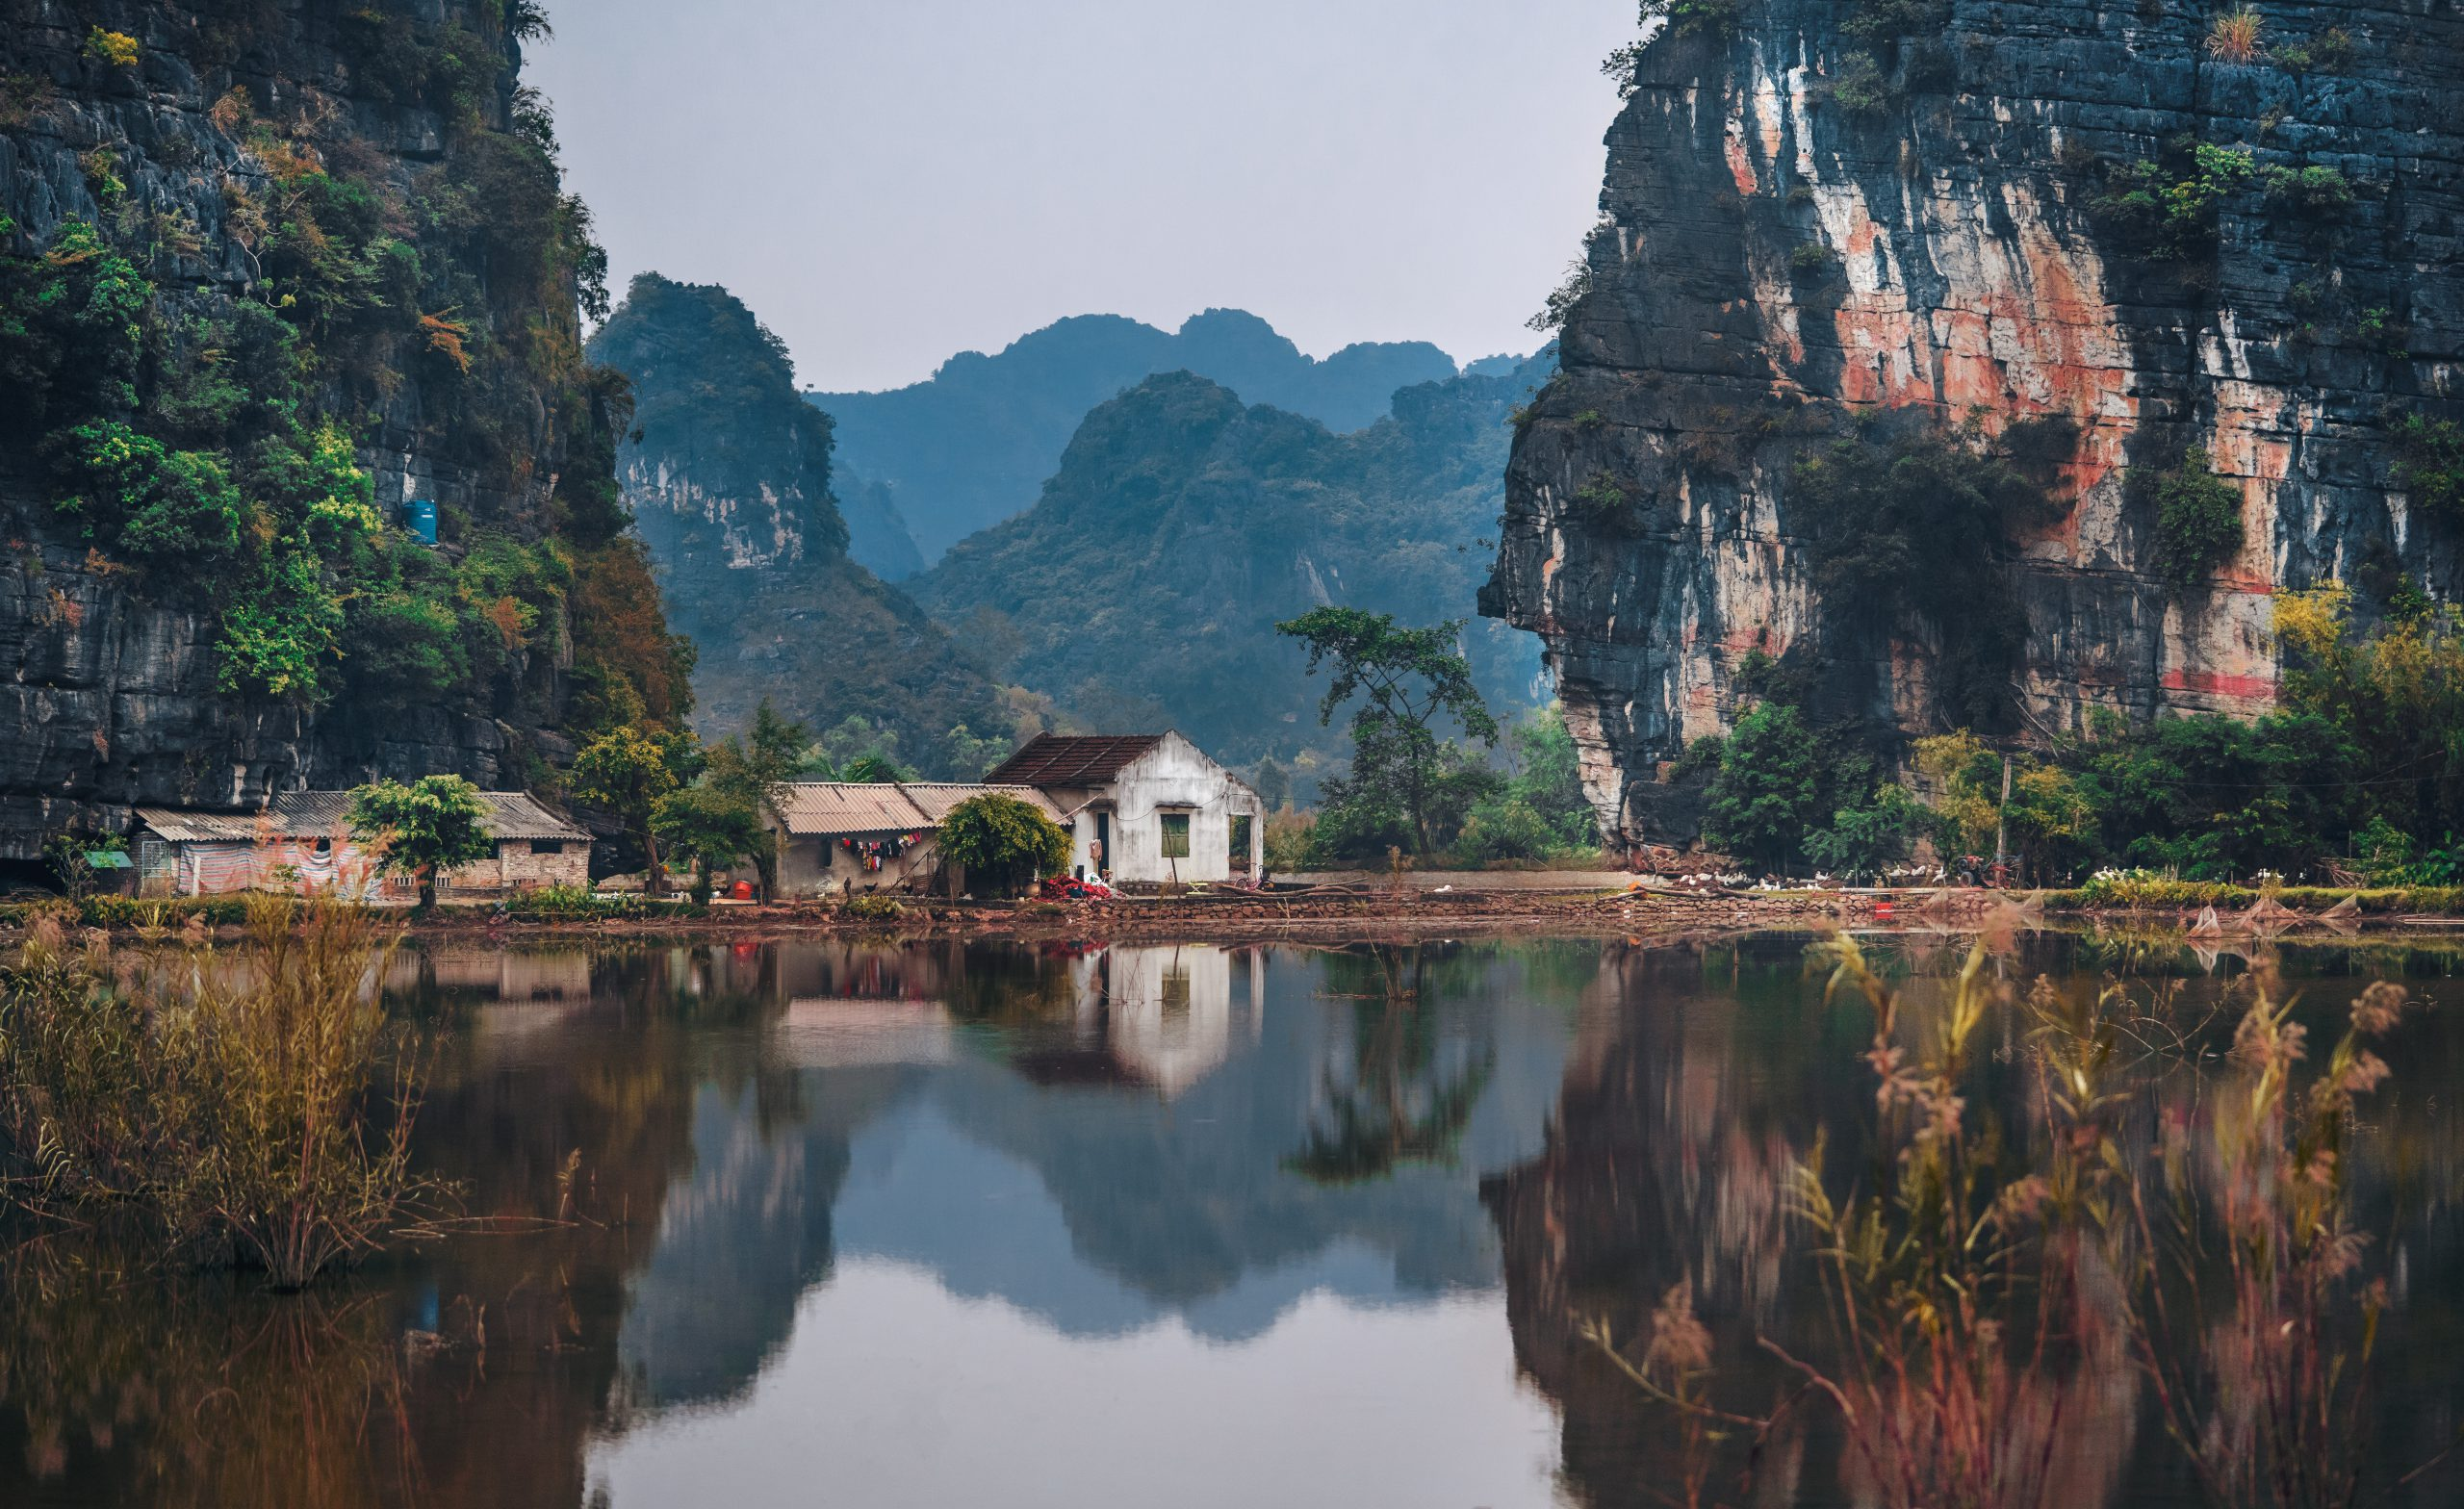 Vietnam mountains with lake and house in front